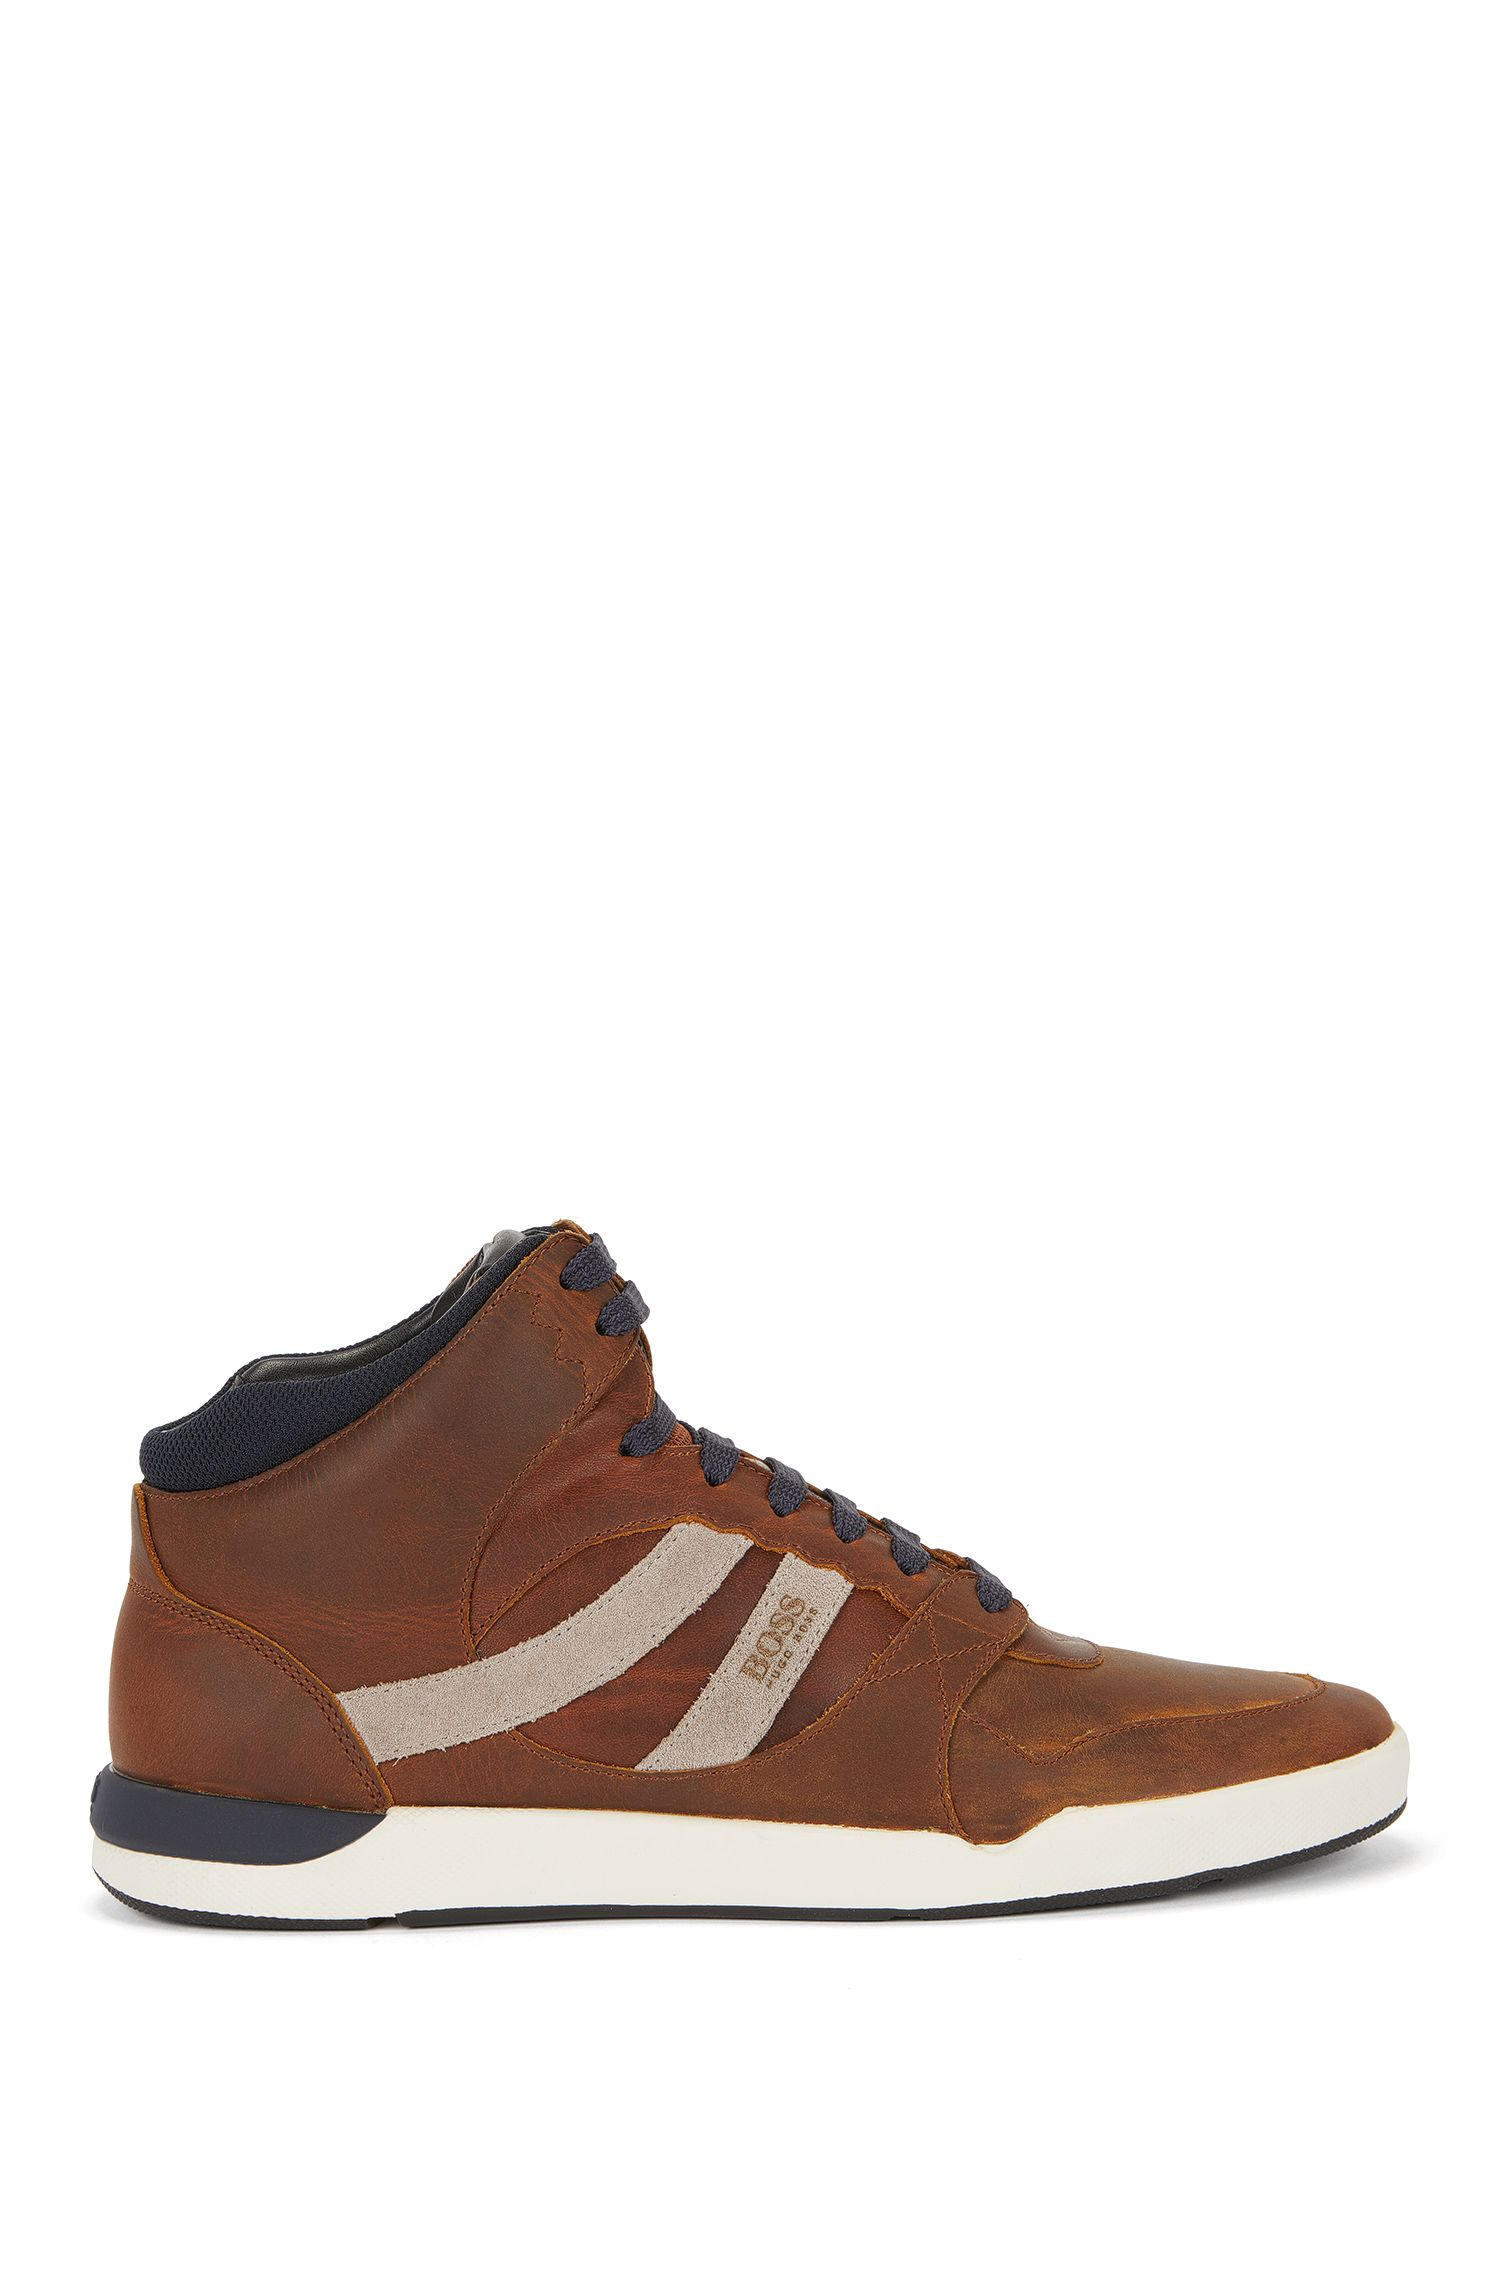 Hightop-Sneakers aus Pull-up-Leder